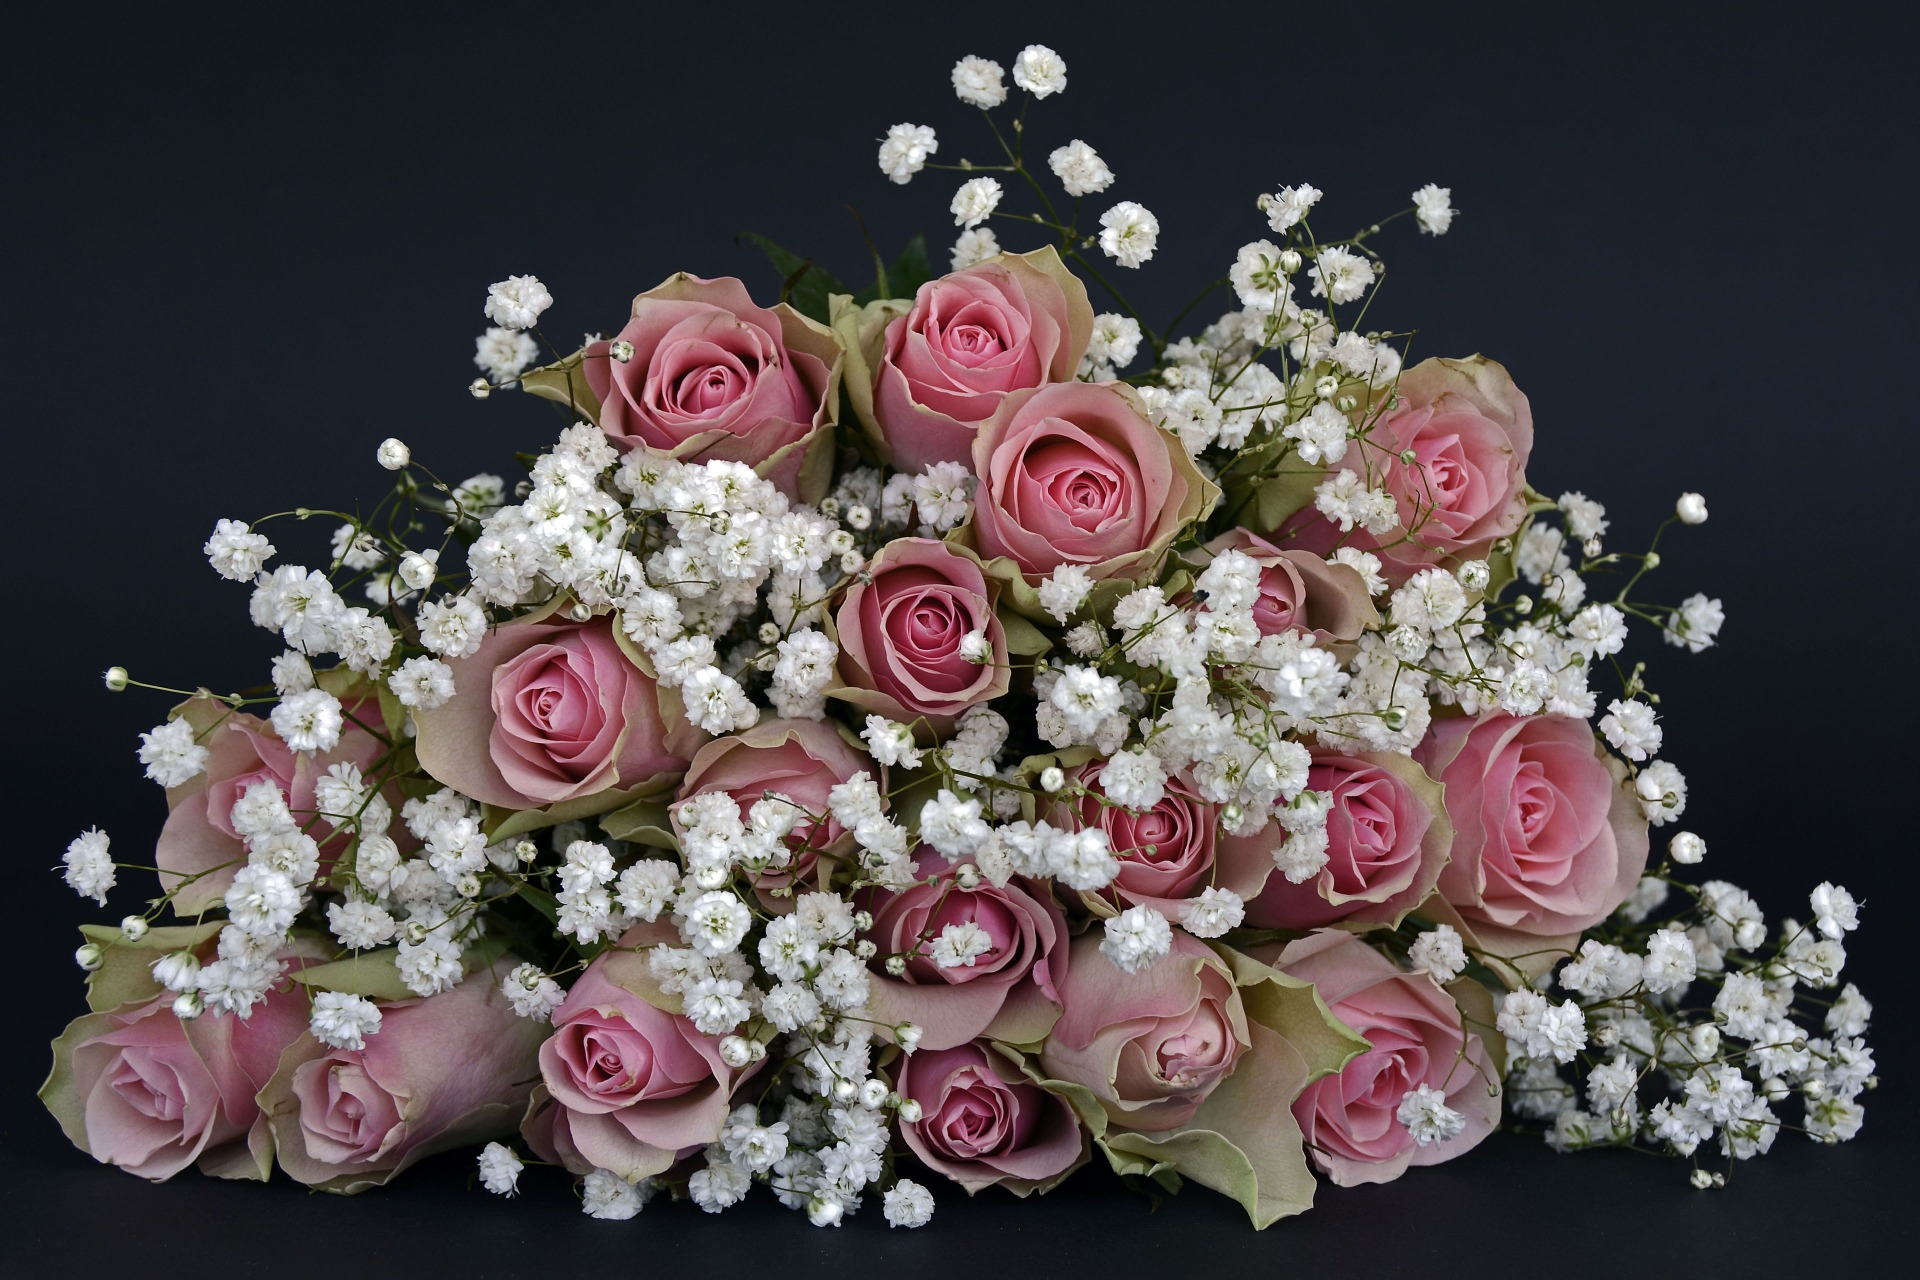 Comment composer un beau bouquet ? 1